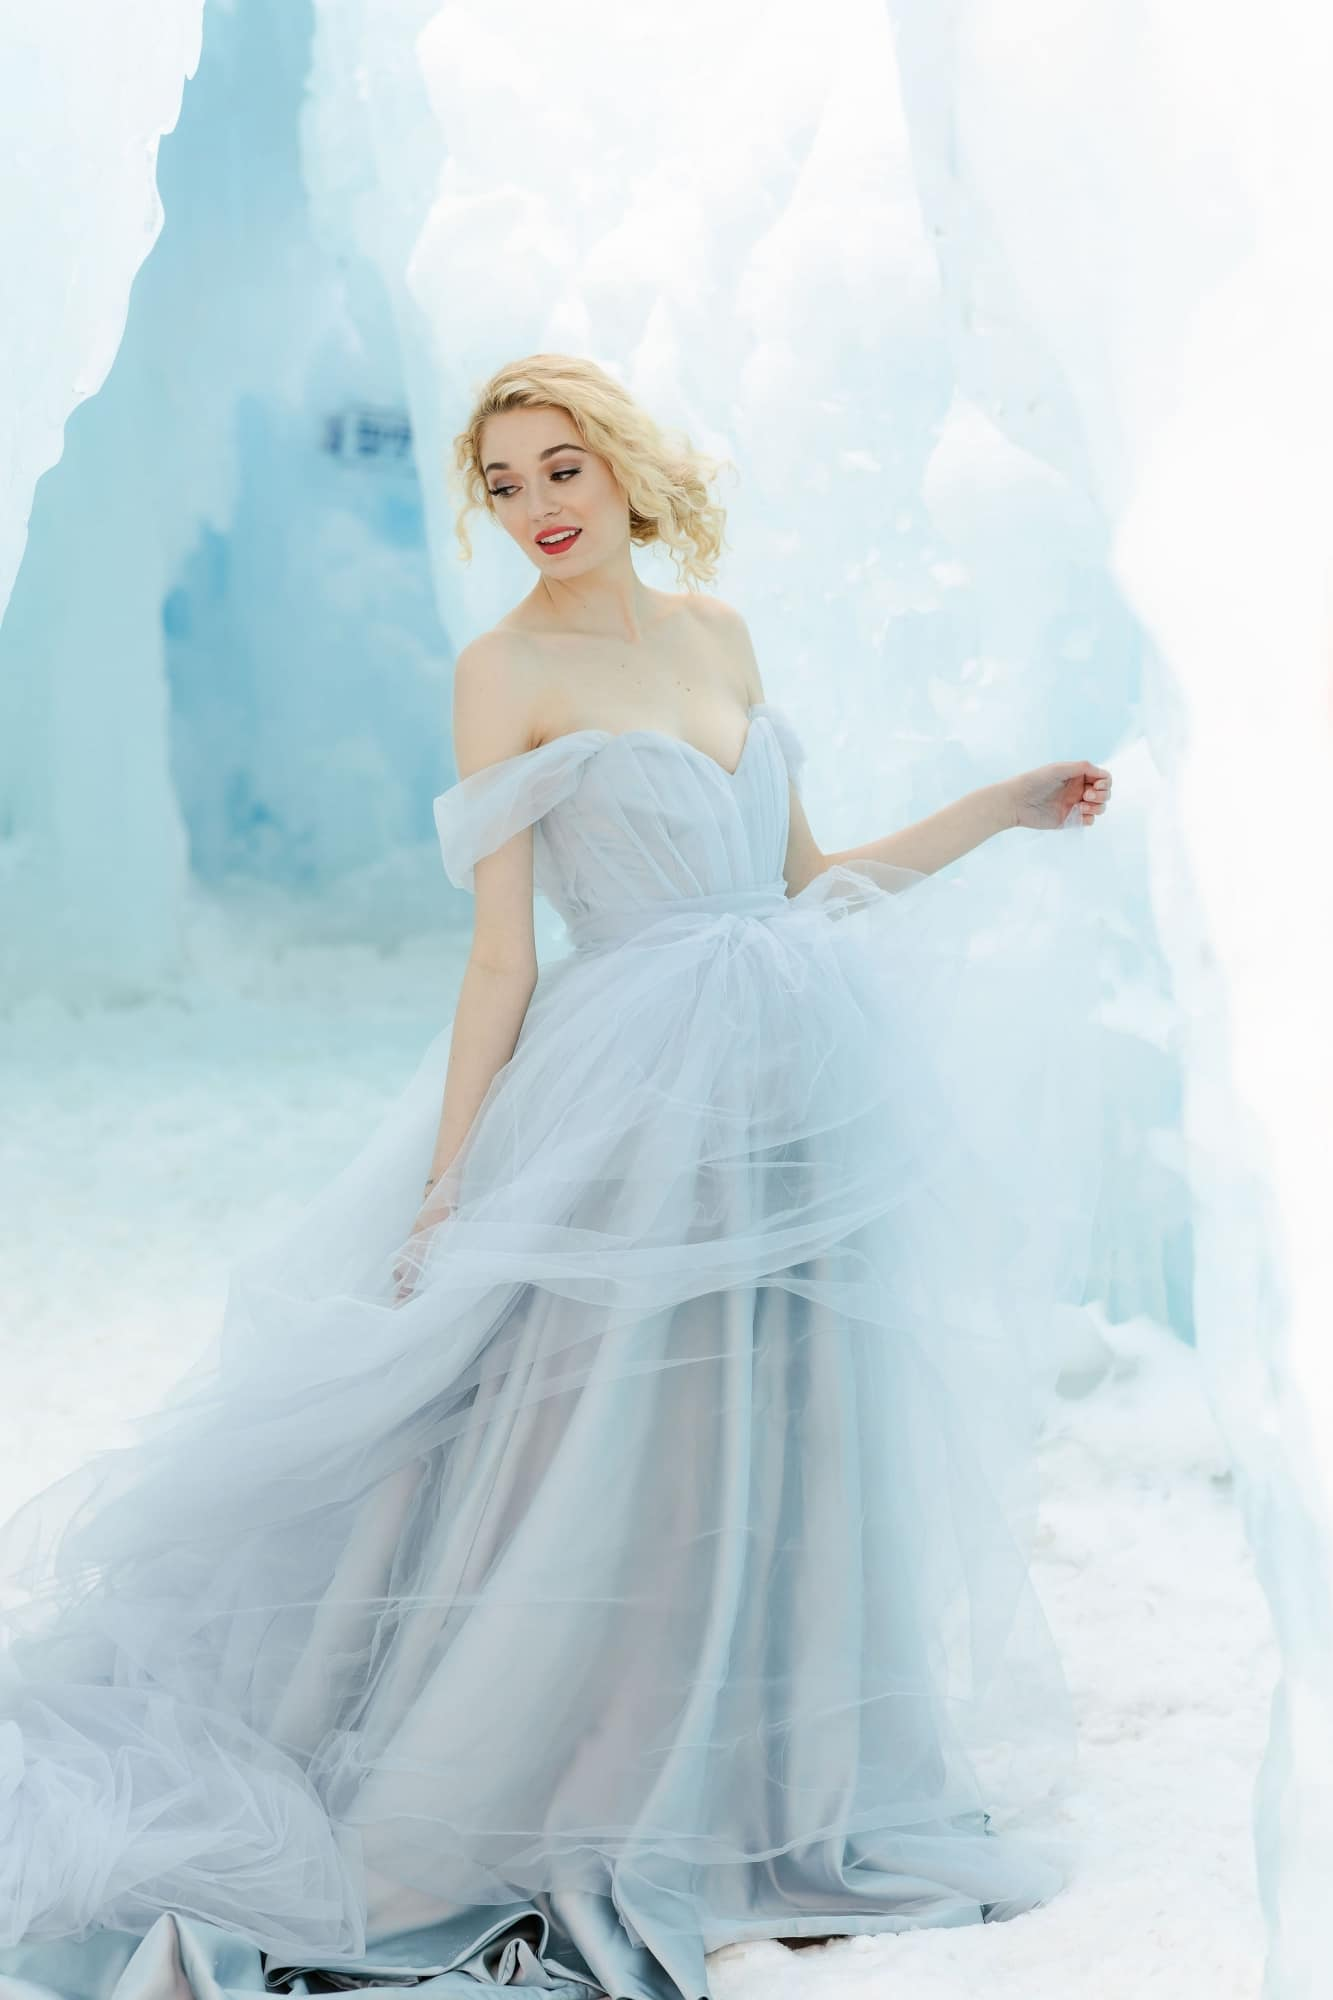 bride with a light blue gown in an ice cave